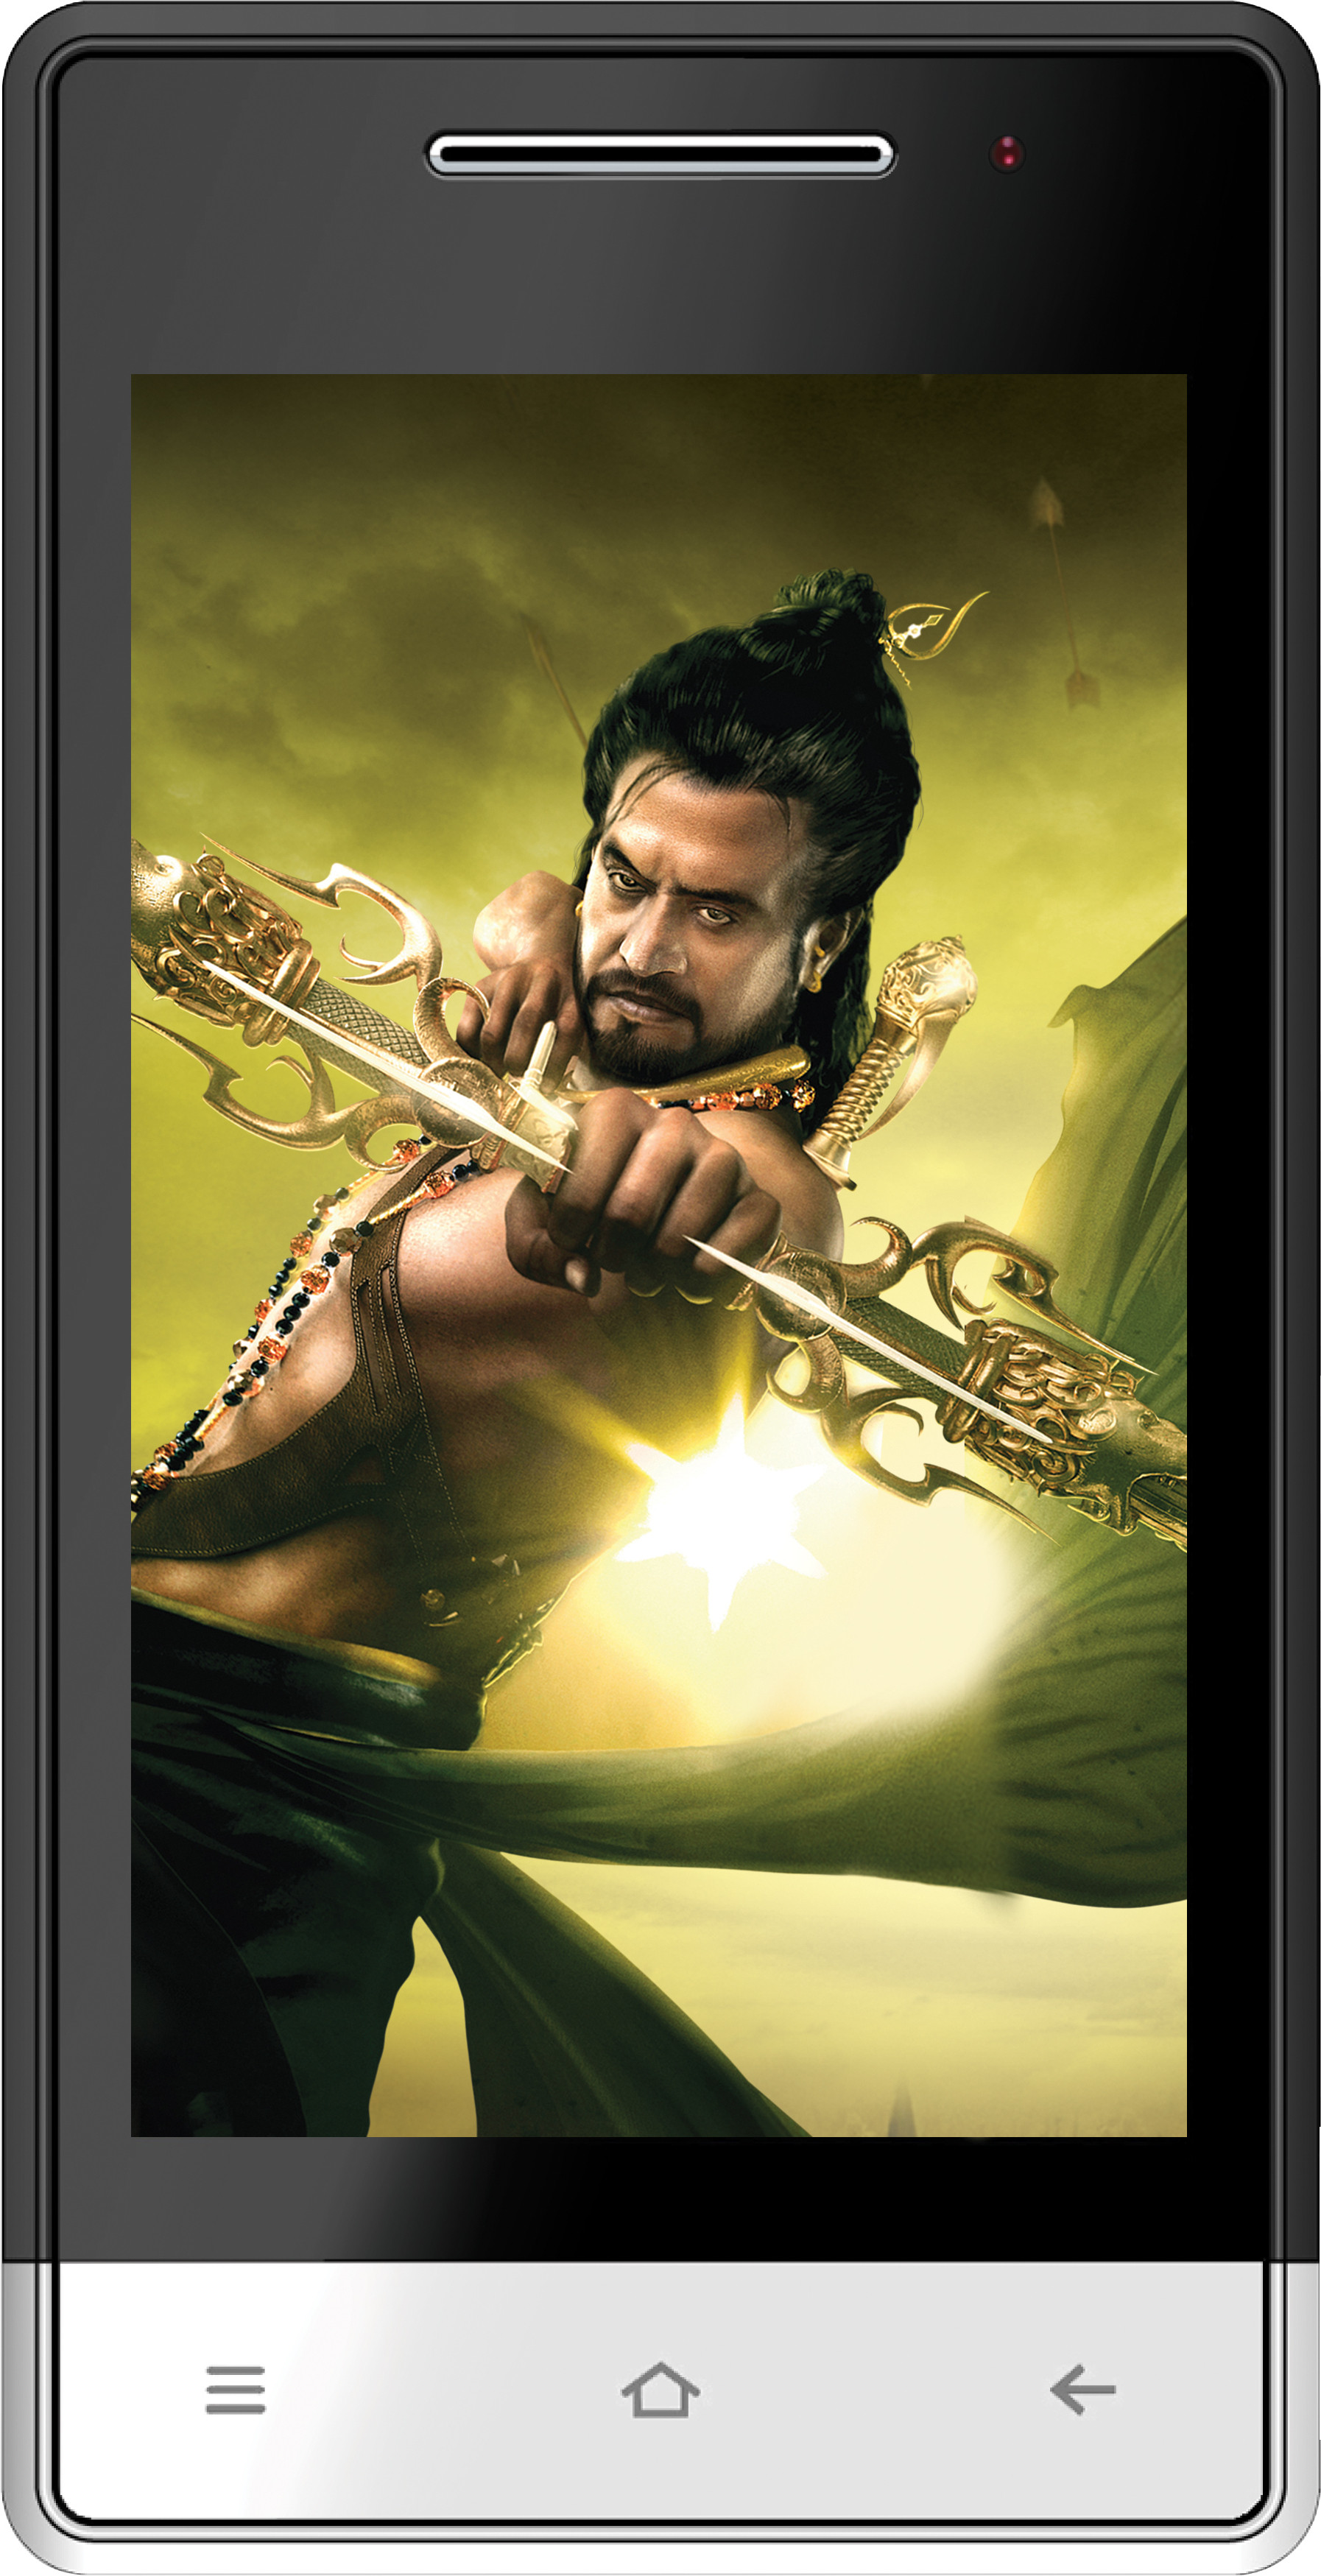 Karbonn A6 Plus Kochadaiiyaan The Legend (Black and White, 104 MB)(512 MB RAM)